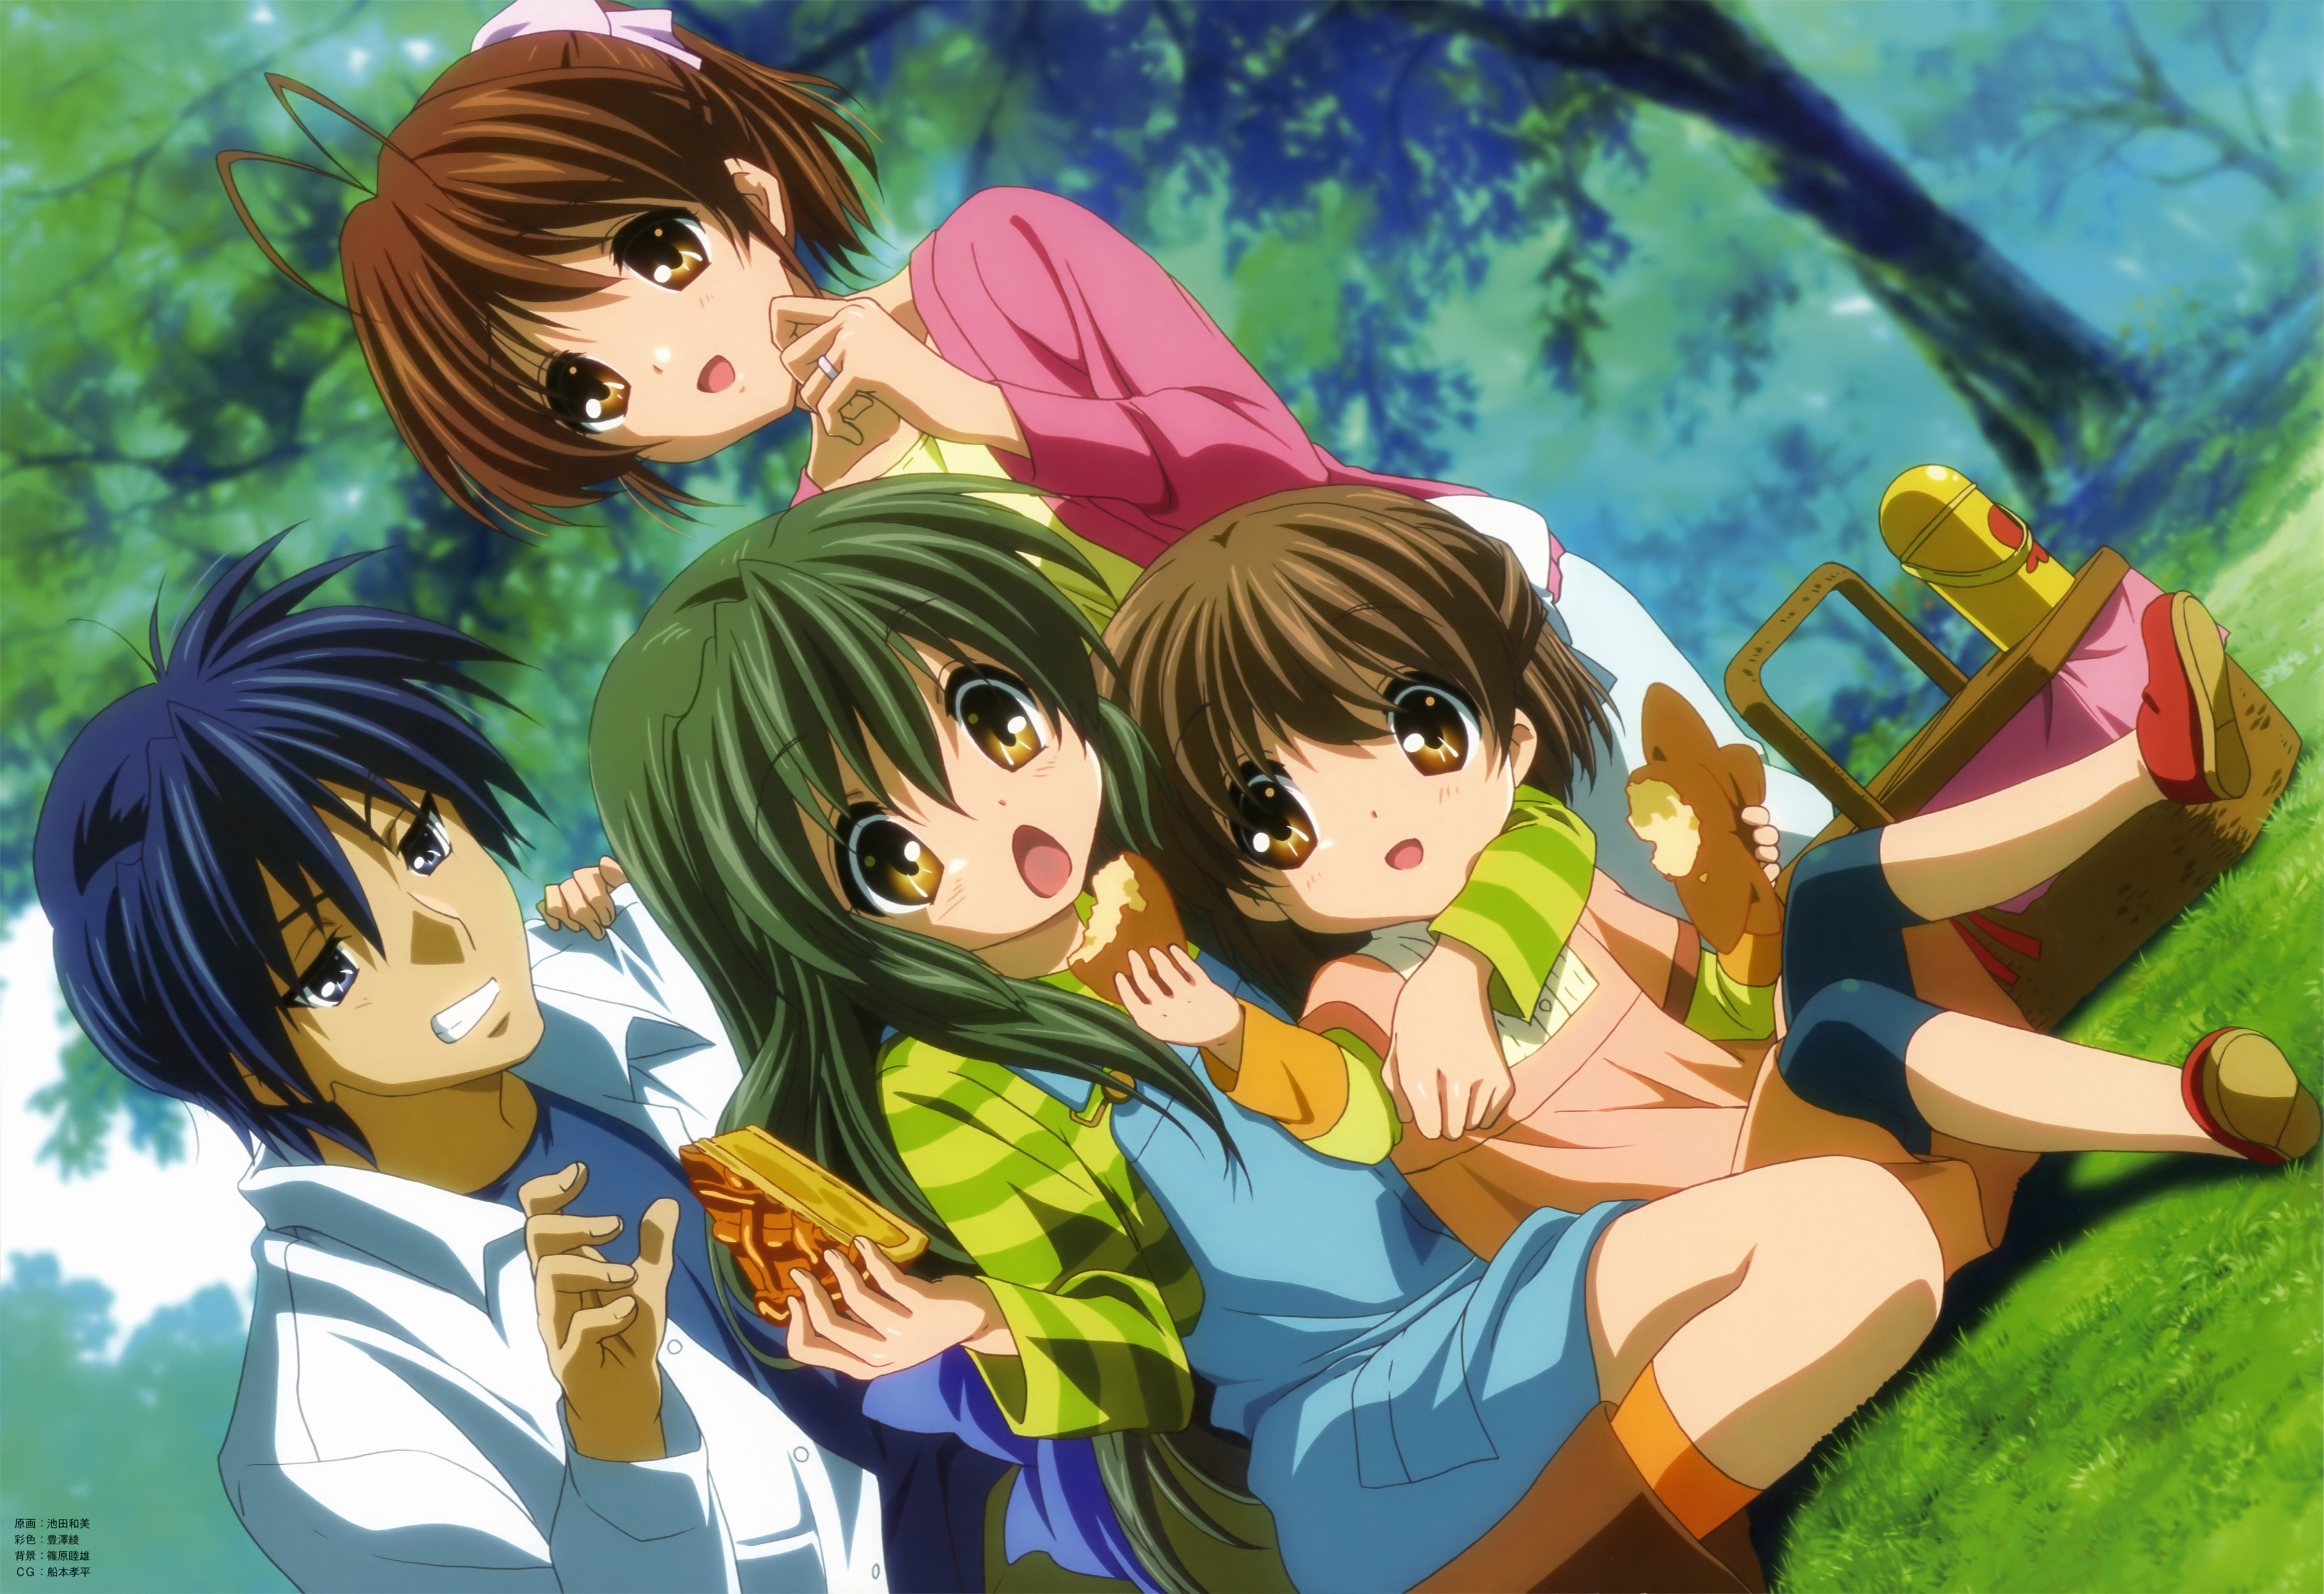 Clannad Clannad After Story wallpaper | 4472x3068 | 191419 ...